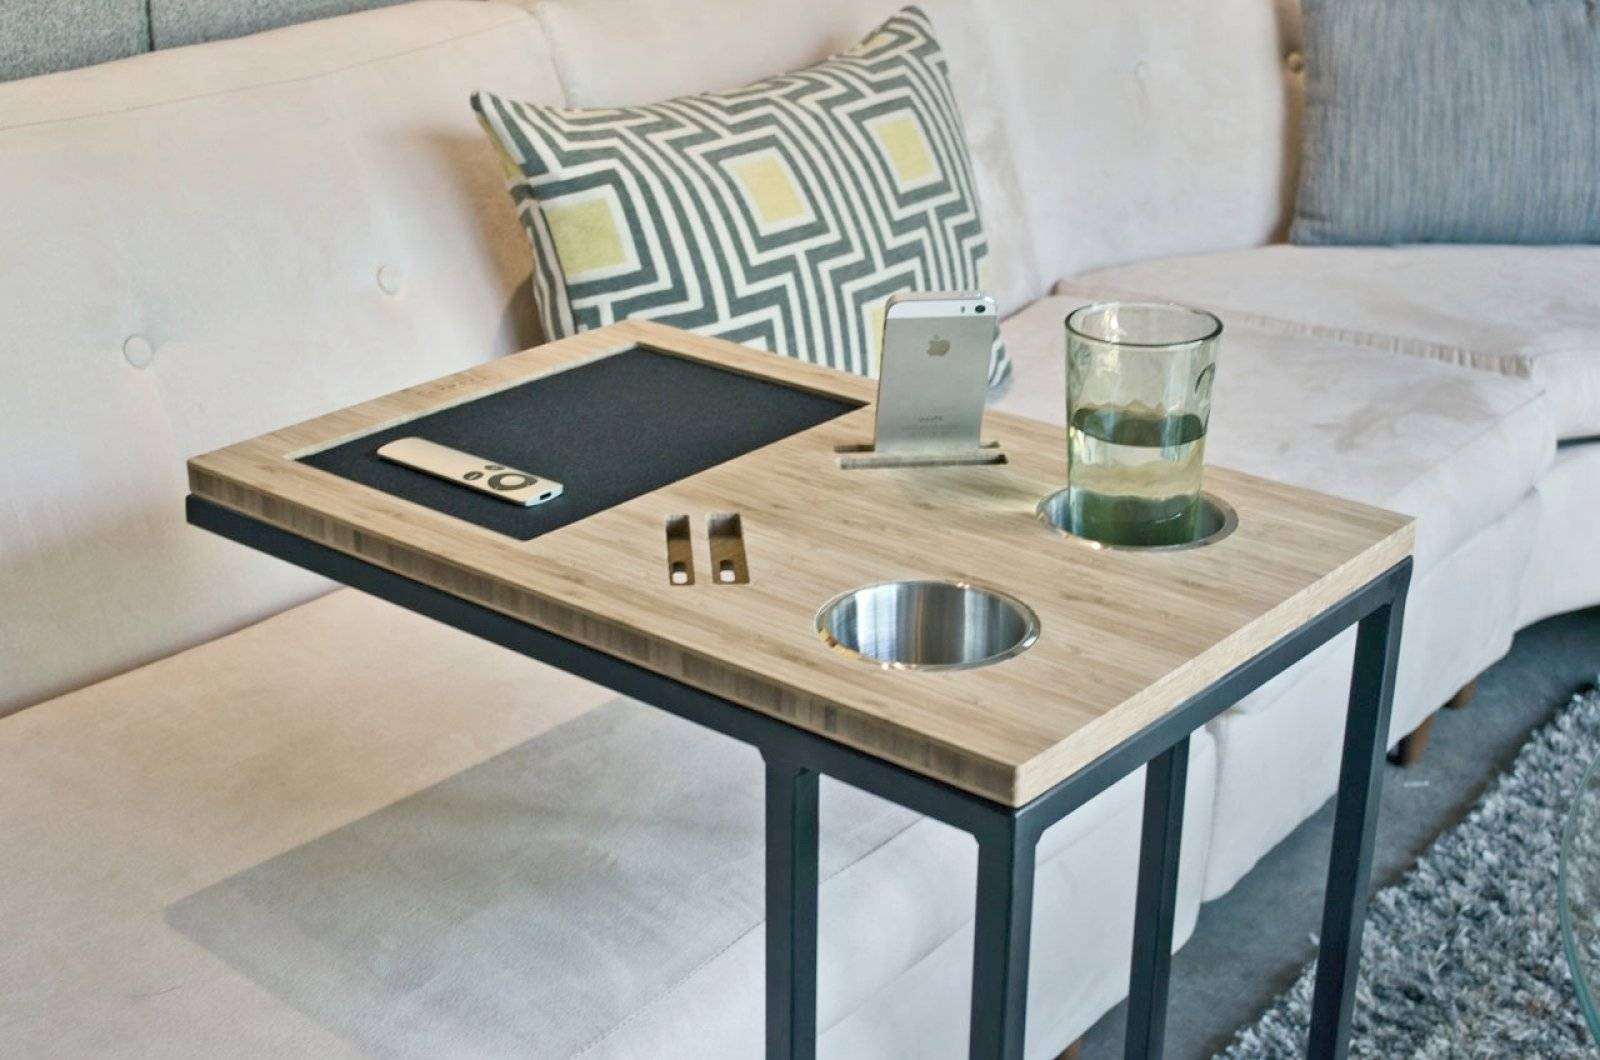 Slide Under Couch Tables | Coffe Table Ideas pertaining to Under Sofa Tray Tables (Image 6 of 15)